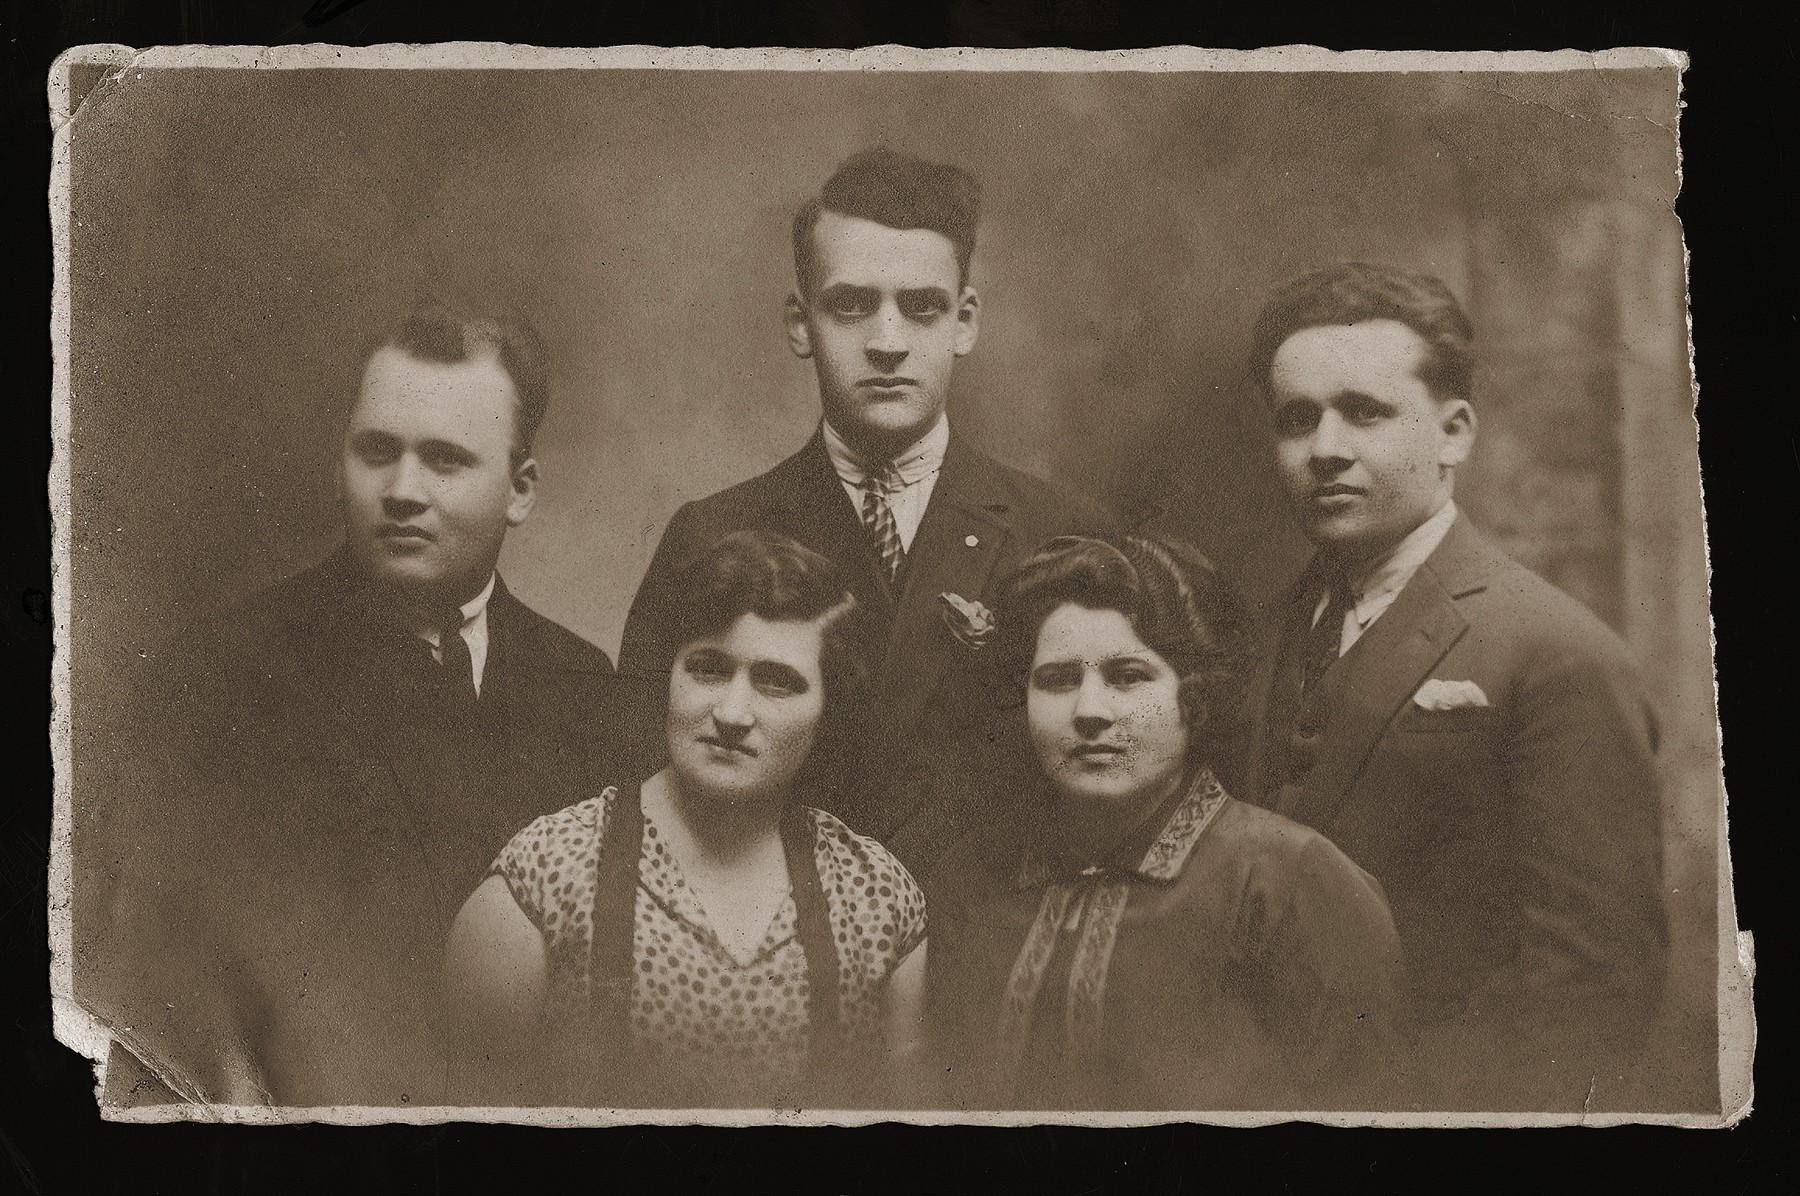 A group portrait of Polish Jews from Dabrowa, given to the donor's brother, Rubin Rozen, as a memento of his passing through Brussels on his way to the United States.